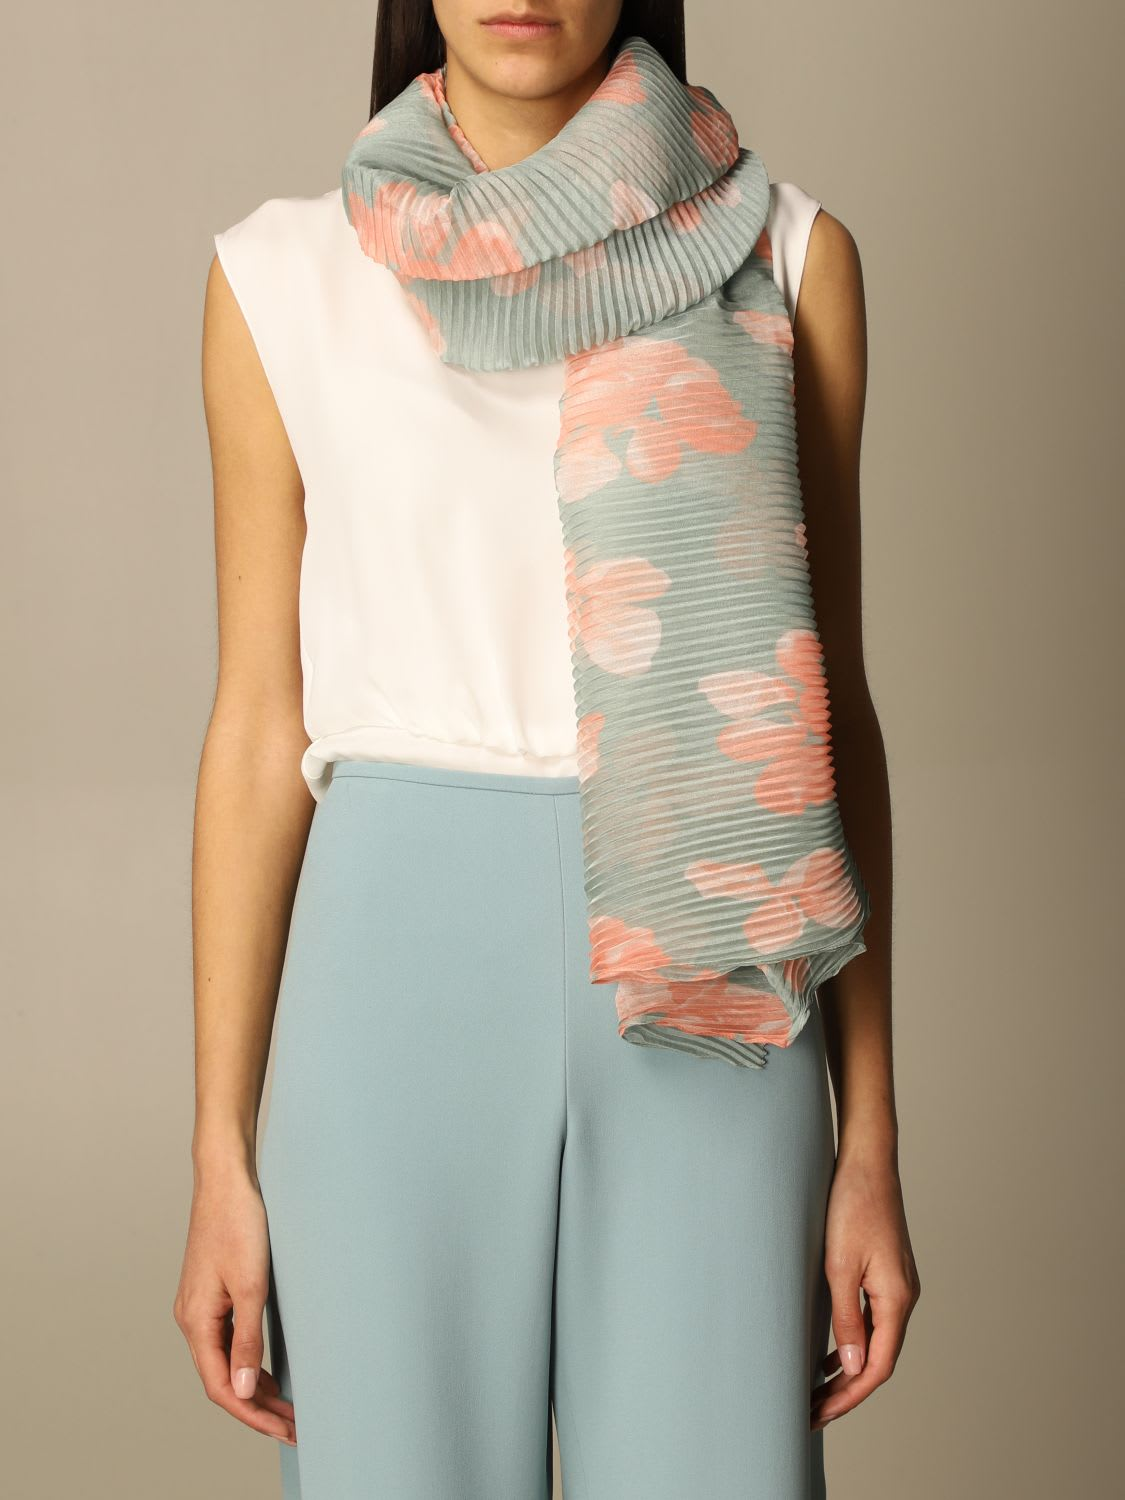 Emporio Armani Scarf Emporio Armani Pleated Foulard With Floral Pattern